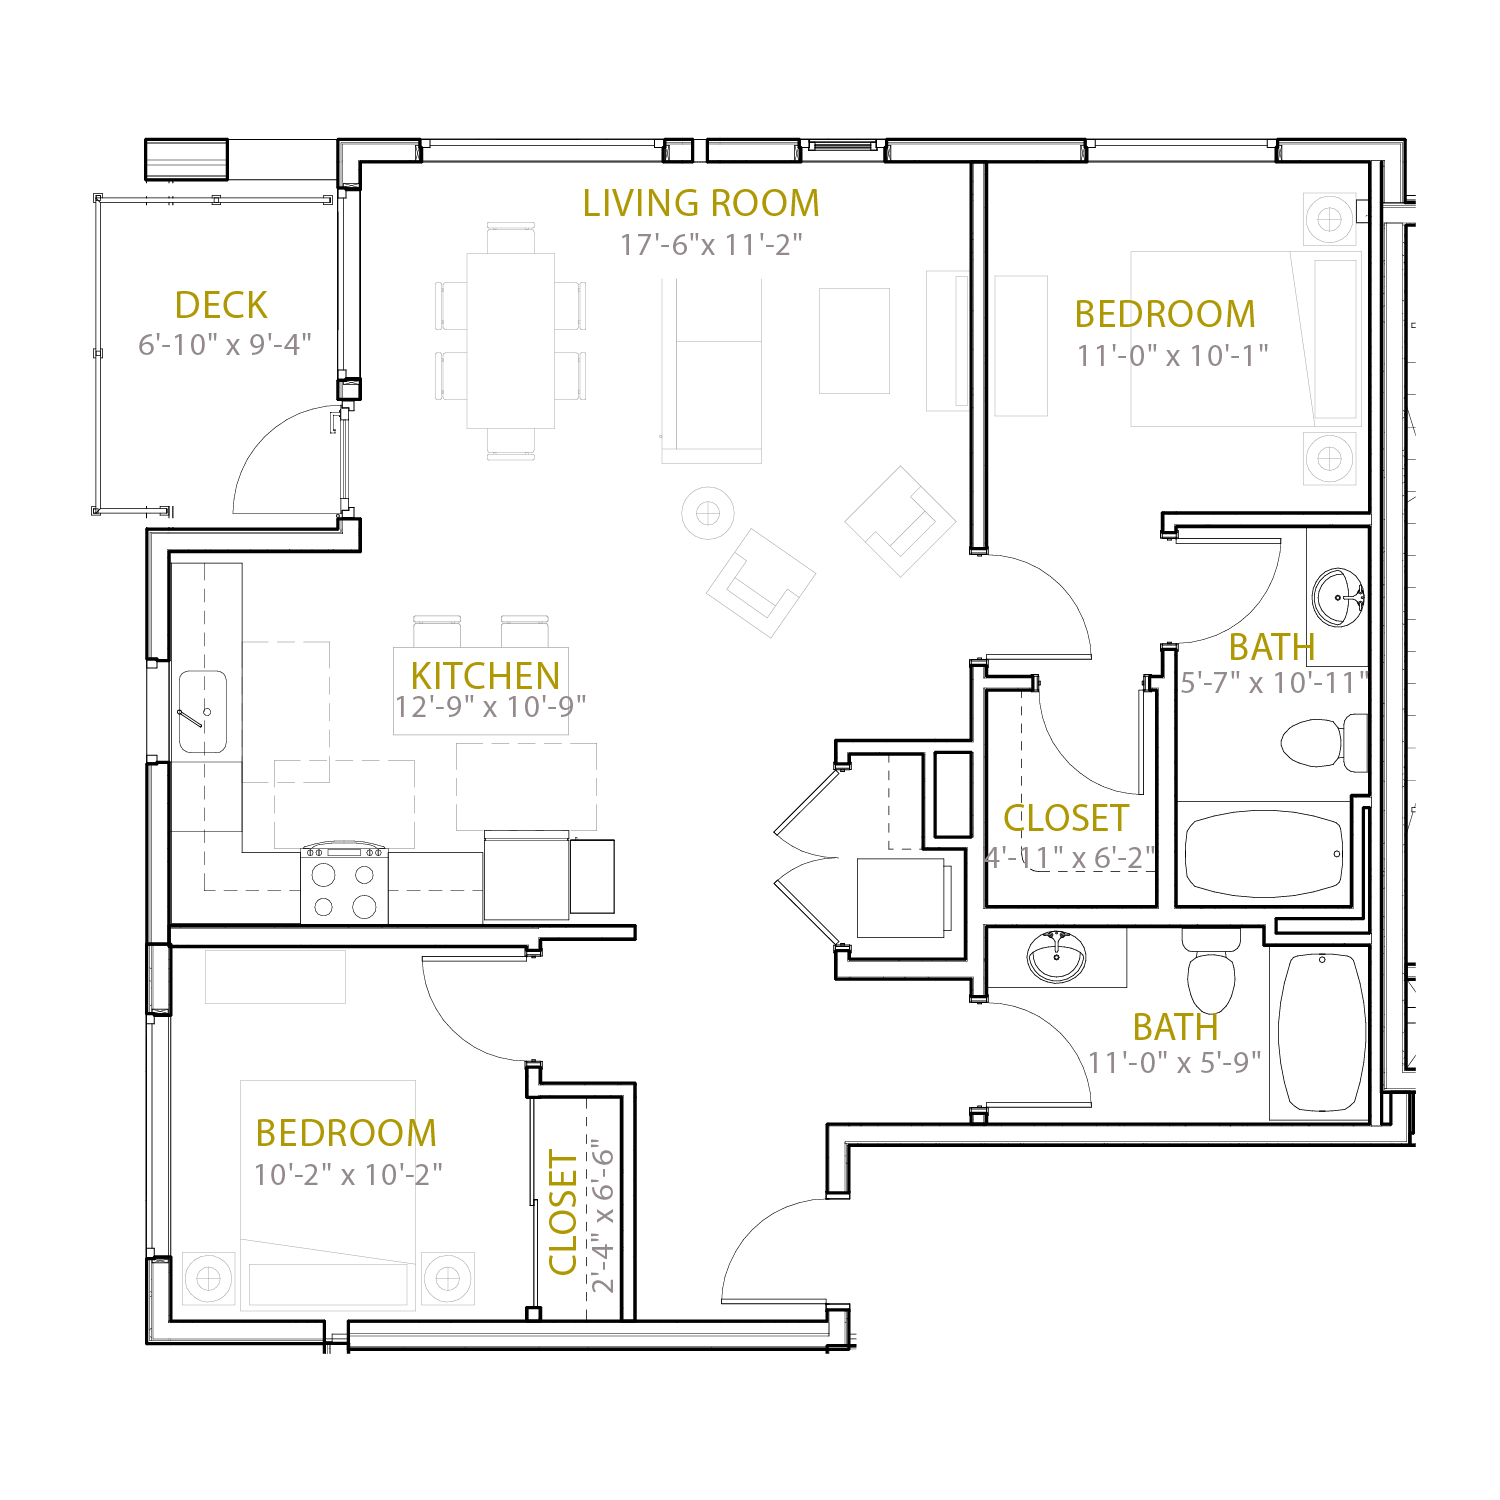 C Six floor plan diagram. Two bedrooms, two bathrooms, an open kitchen and living area, and a deck.